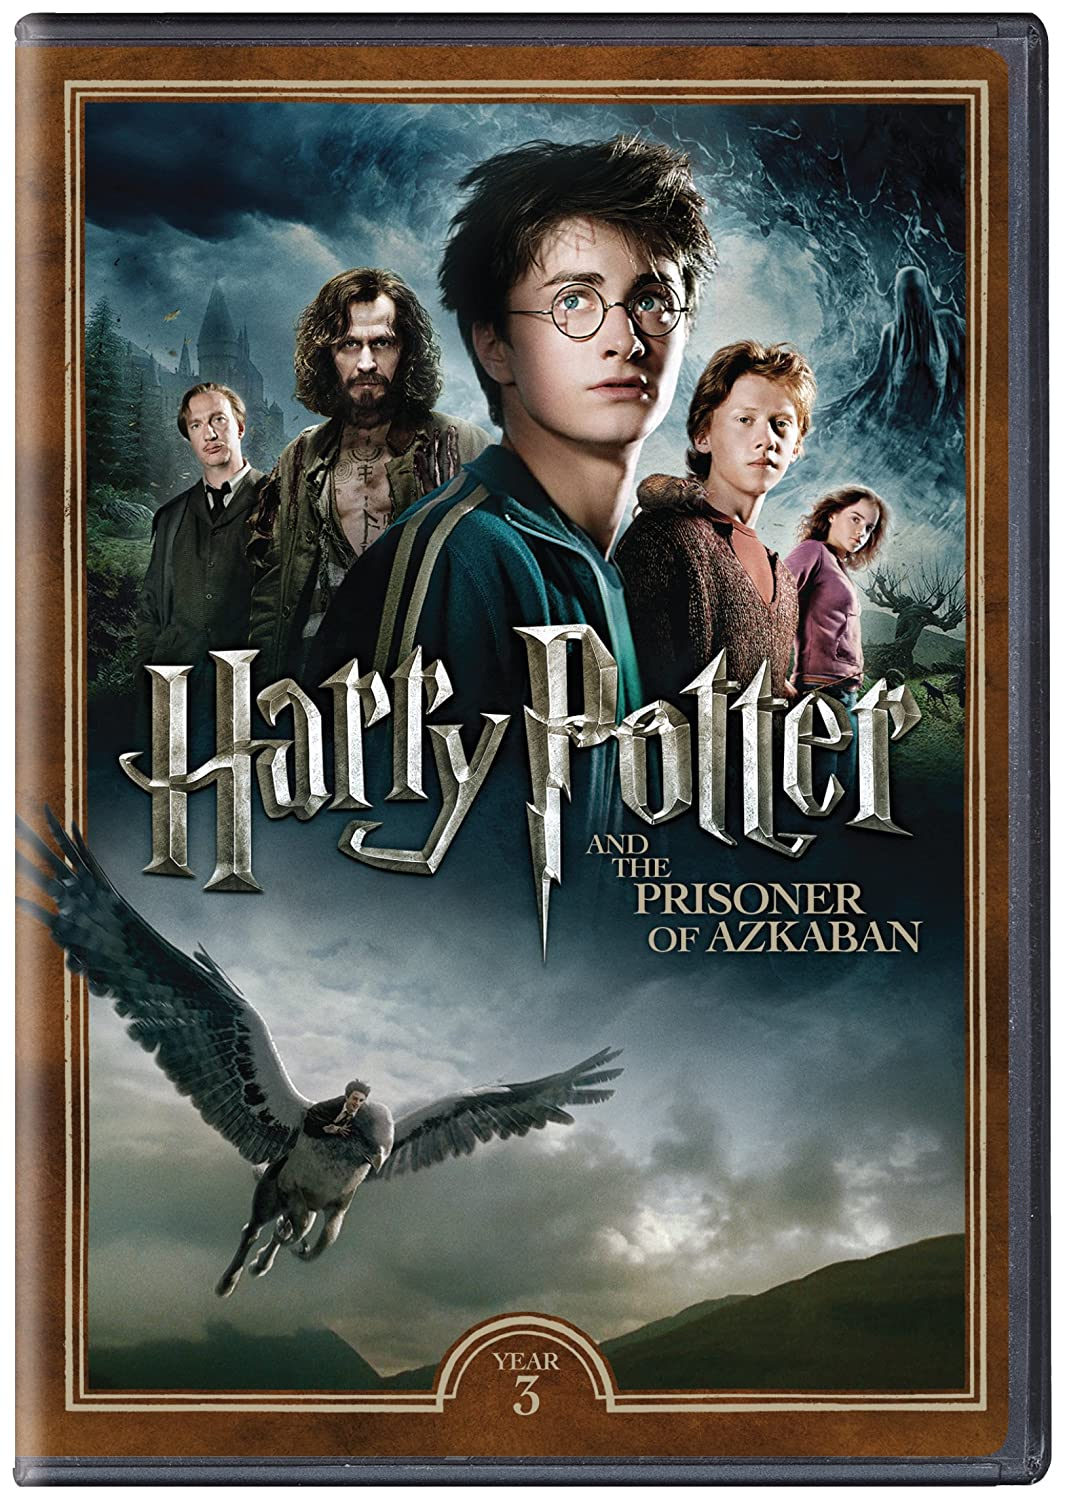 Amazon In Buy Harry Potter And The Prisoner Of Azkaban 2004 Dvd Blu Ray Online At Best Prices In India Movies Tv Shows